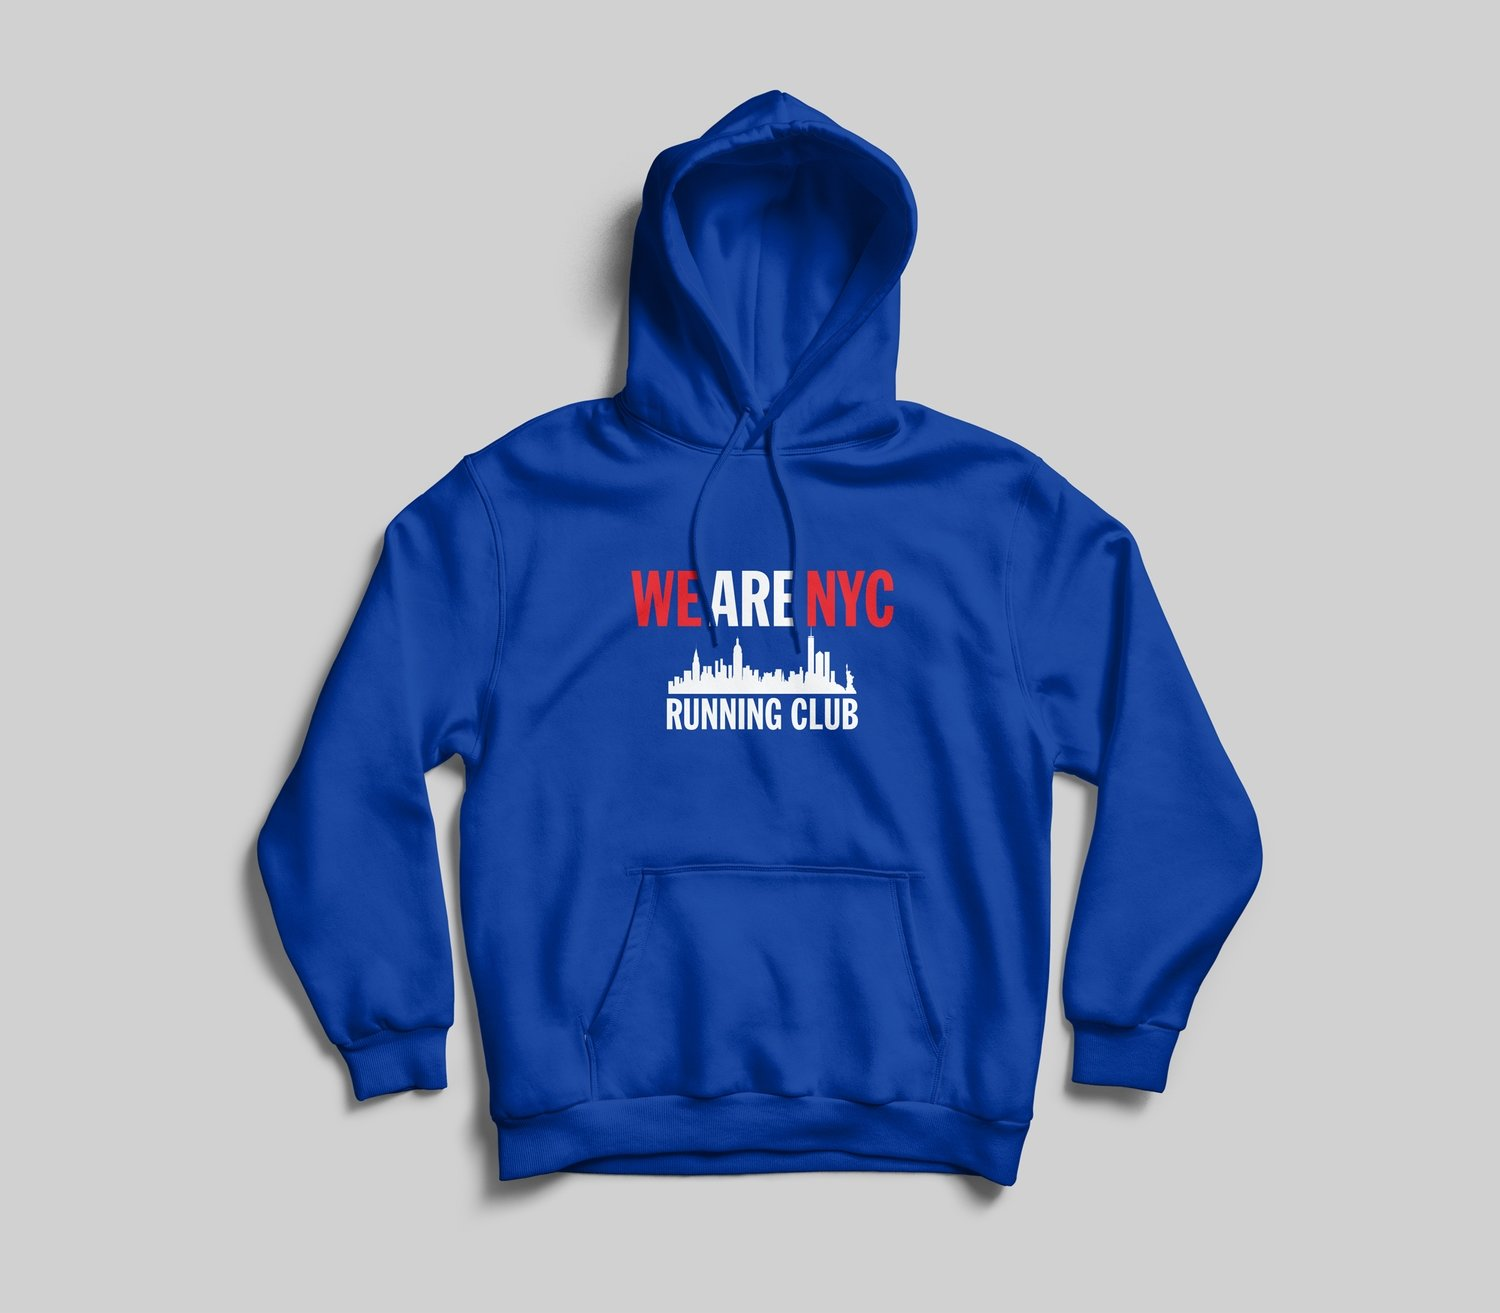 *YOUTH* WE ARE NYC IMPACT LOGO HOODED SWEATSHIRT - AVAILABLE IN 6 COLORS!